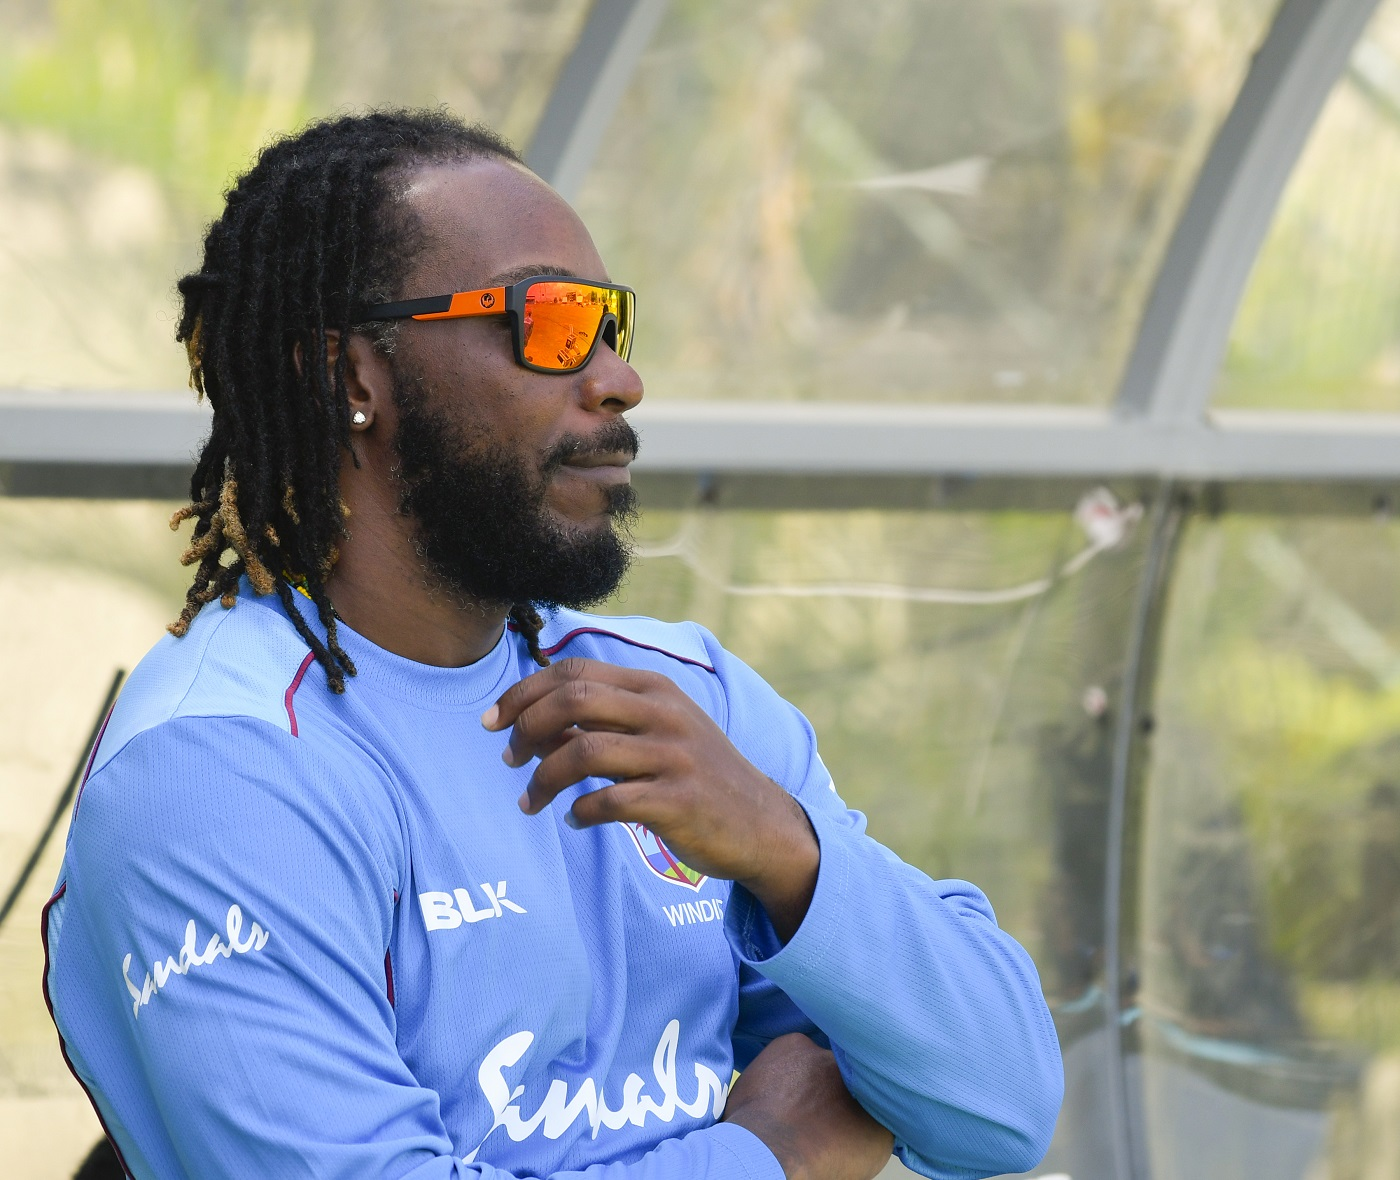 2019 World Cup, Chris Gayle